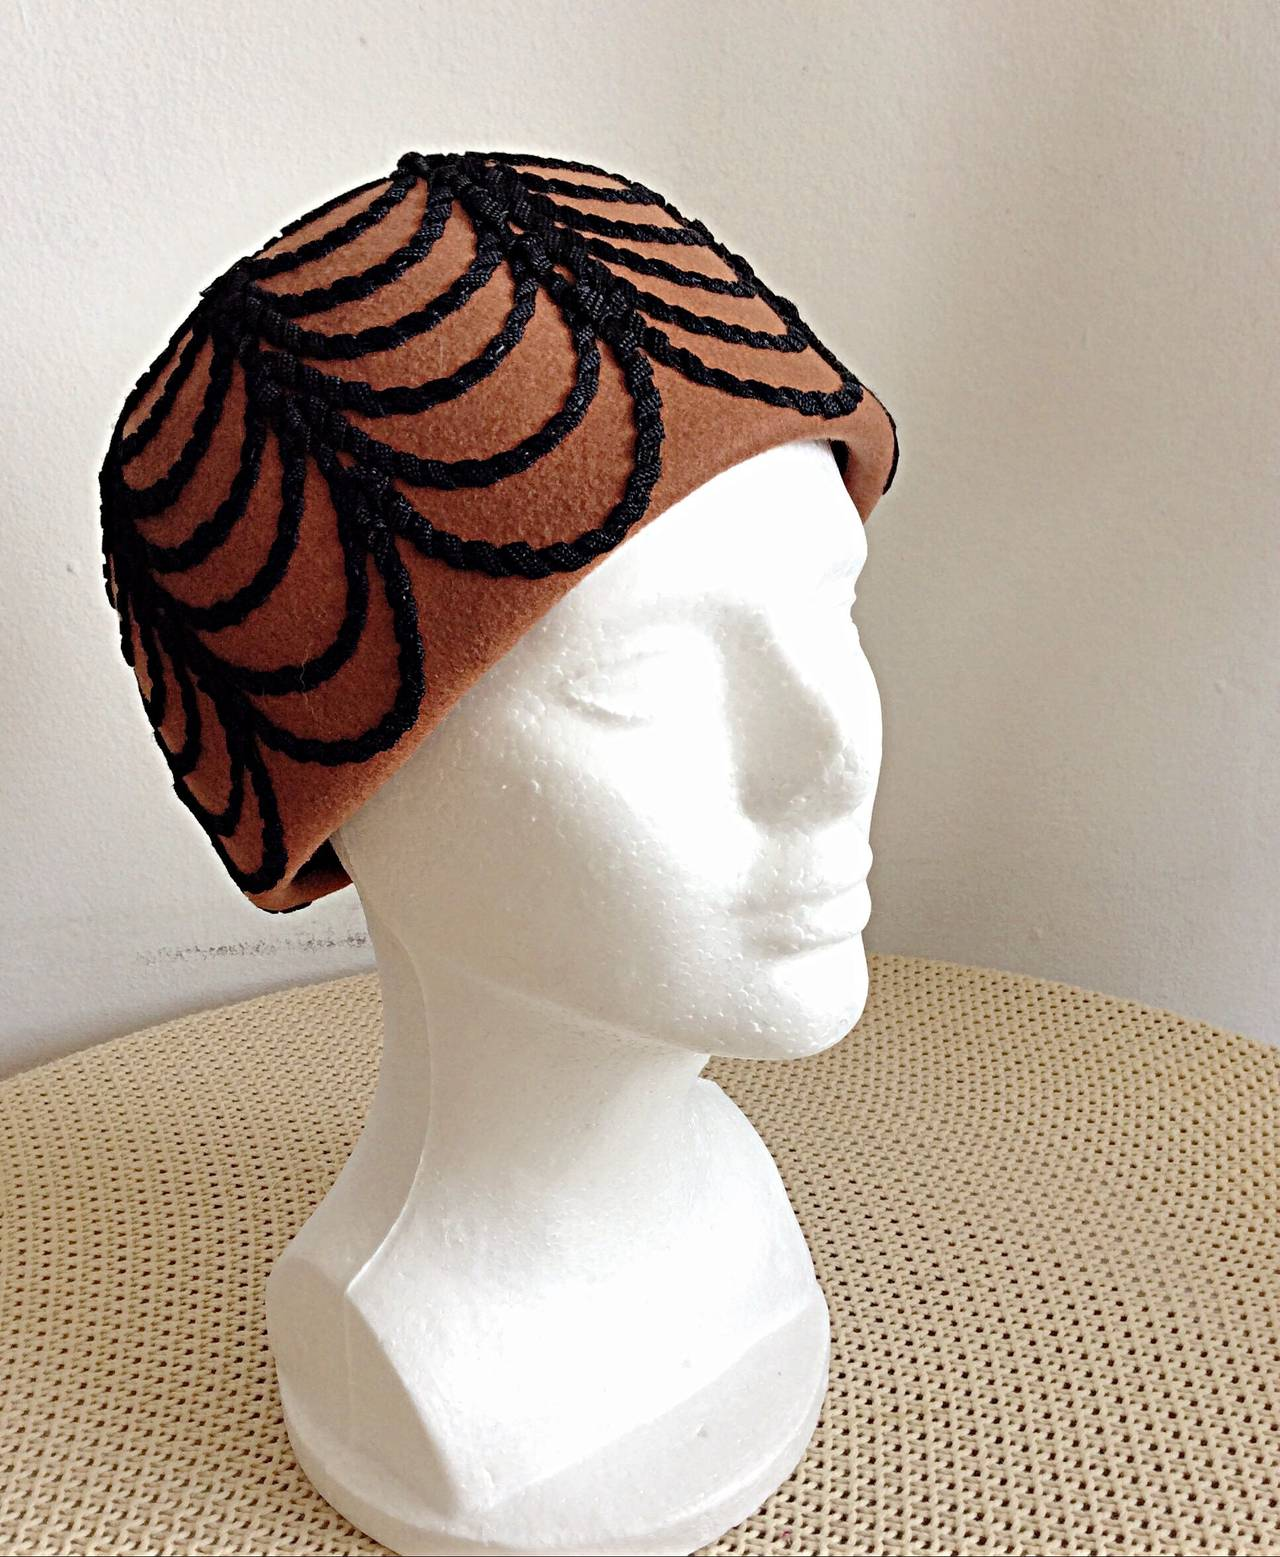 Wonderful rare vintage 1960s Henry Pollak for Glenover felt hat! Dark rust color, with intricate black silk woven detail. In great condition. Approximately Size 7/8  Measures 8 inches by 8 inches